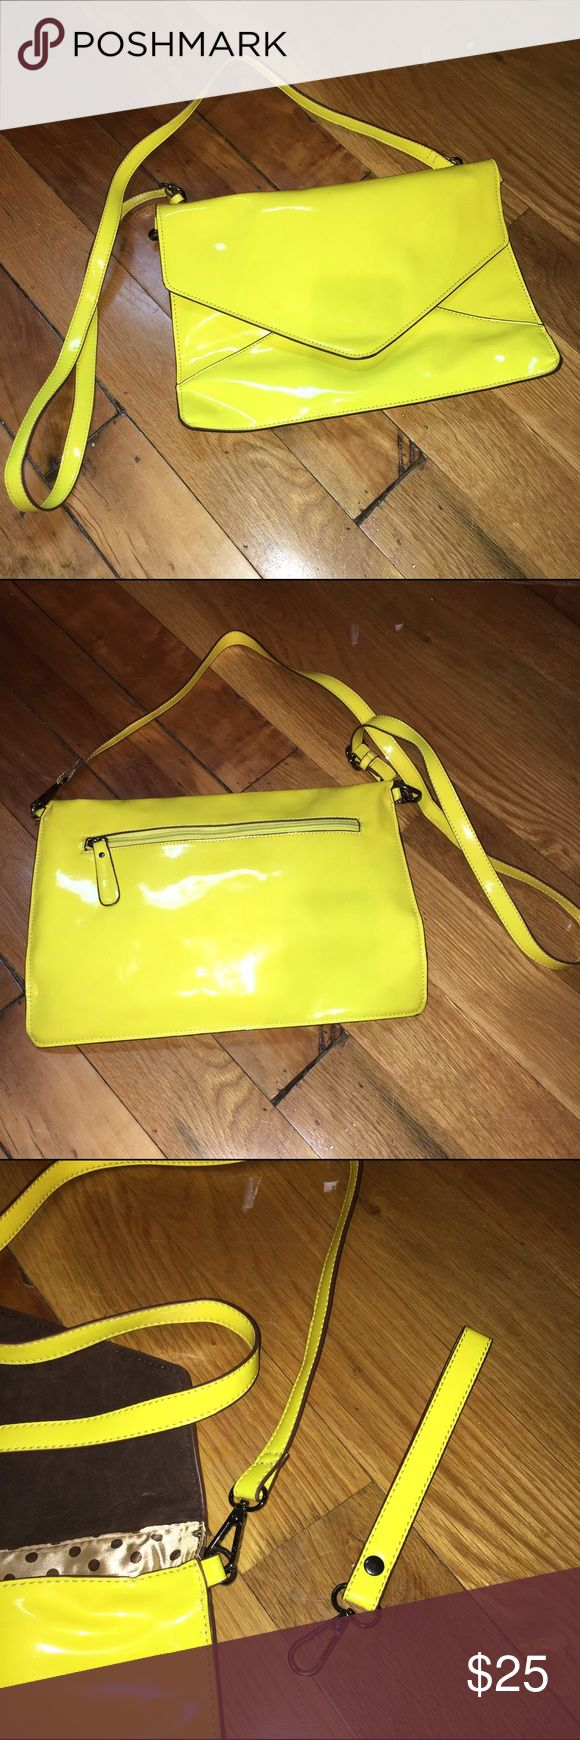 Neon yellow envelope purse. Neon yellow envelope purse. Includes long cross body strap and wristlet strap. New. Patient leather. Pockets inside and outside. About the size of an iPad. 13 in x 9 in. Melie Bianco Bags Crossbody Bags